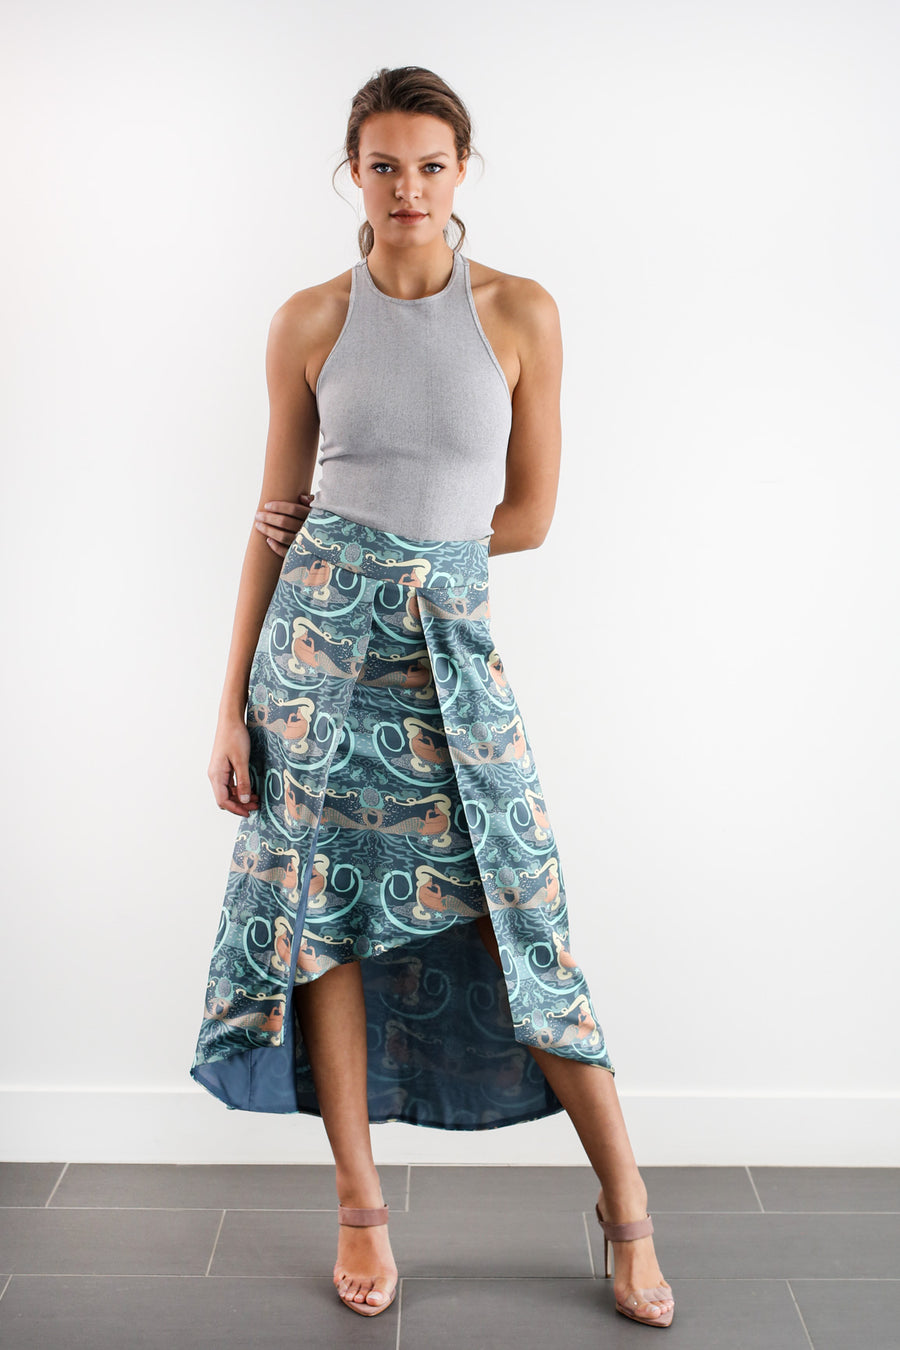 AVERY SKIRT - MERMAID PRINT